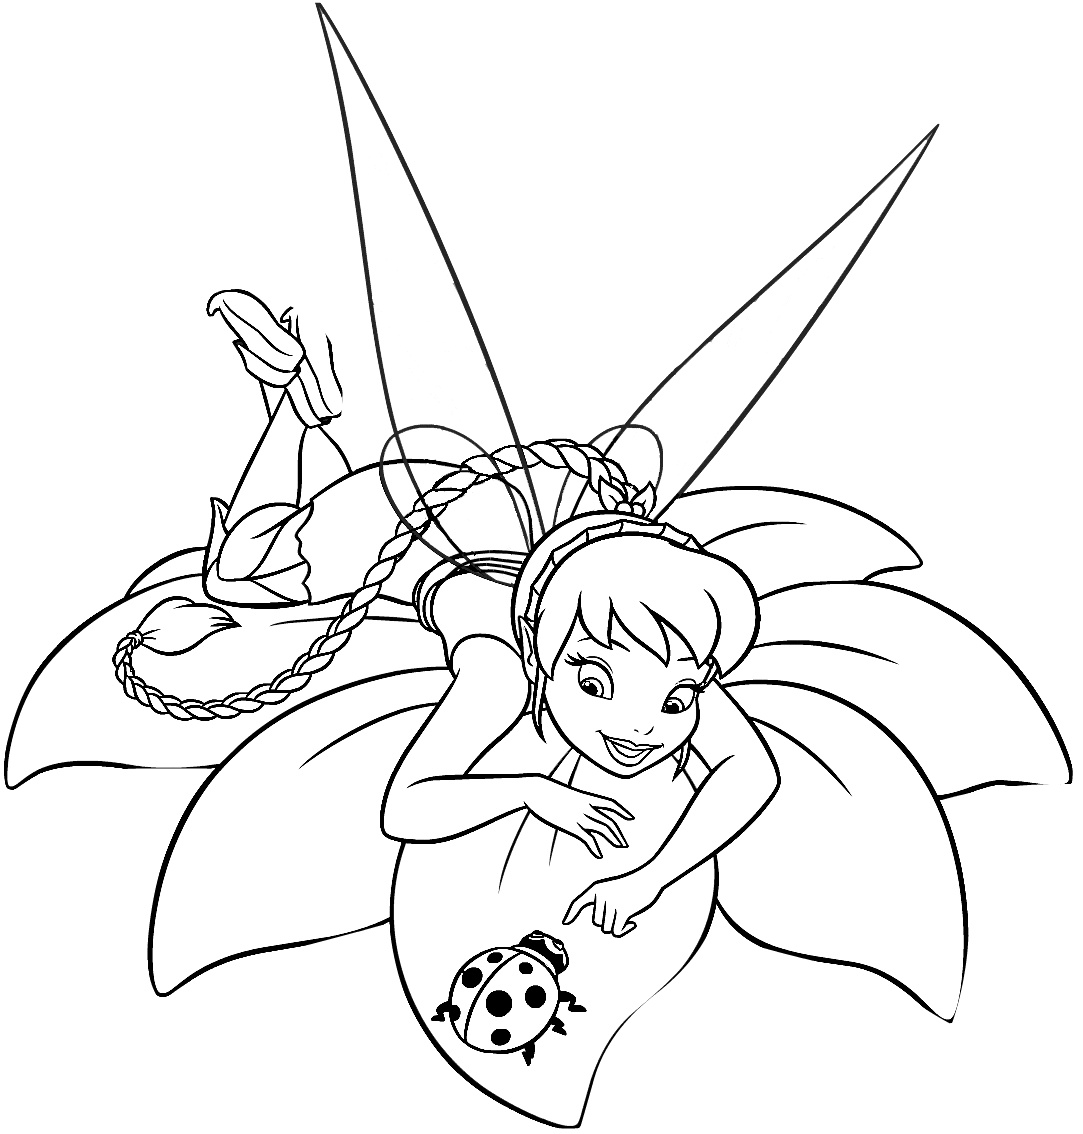 tinker bell coloring pages tinkerbell coloring pages team colors tinker coloring bell pages